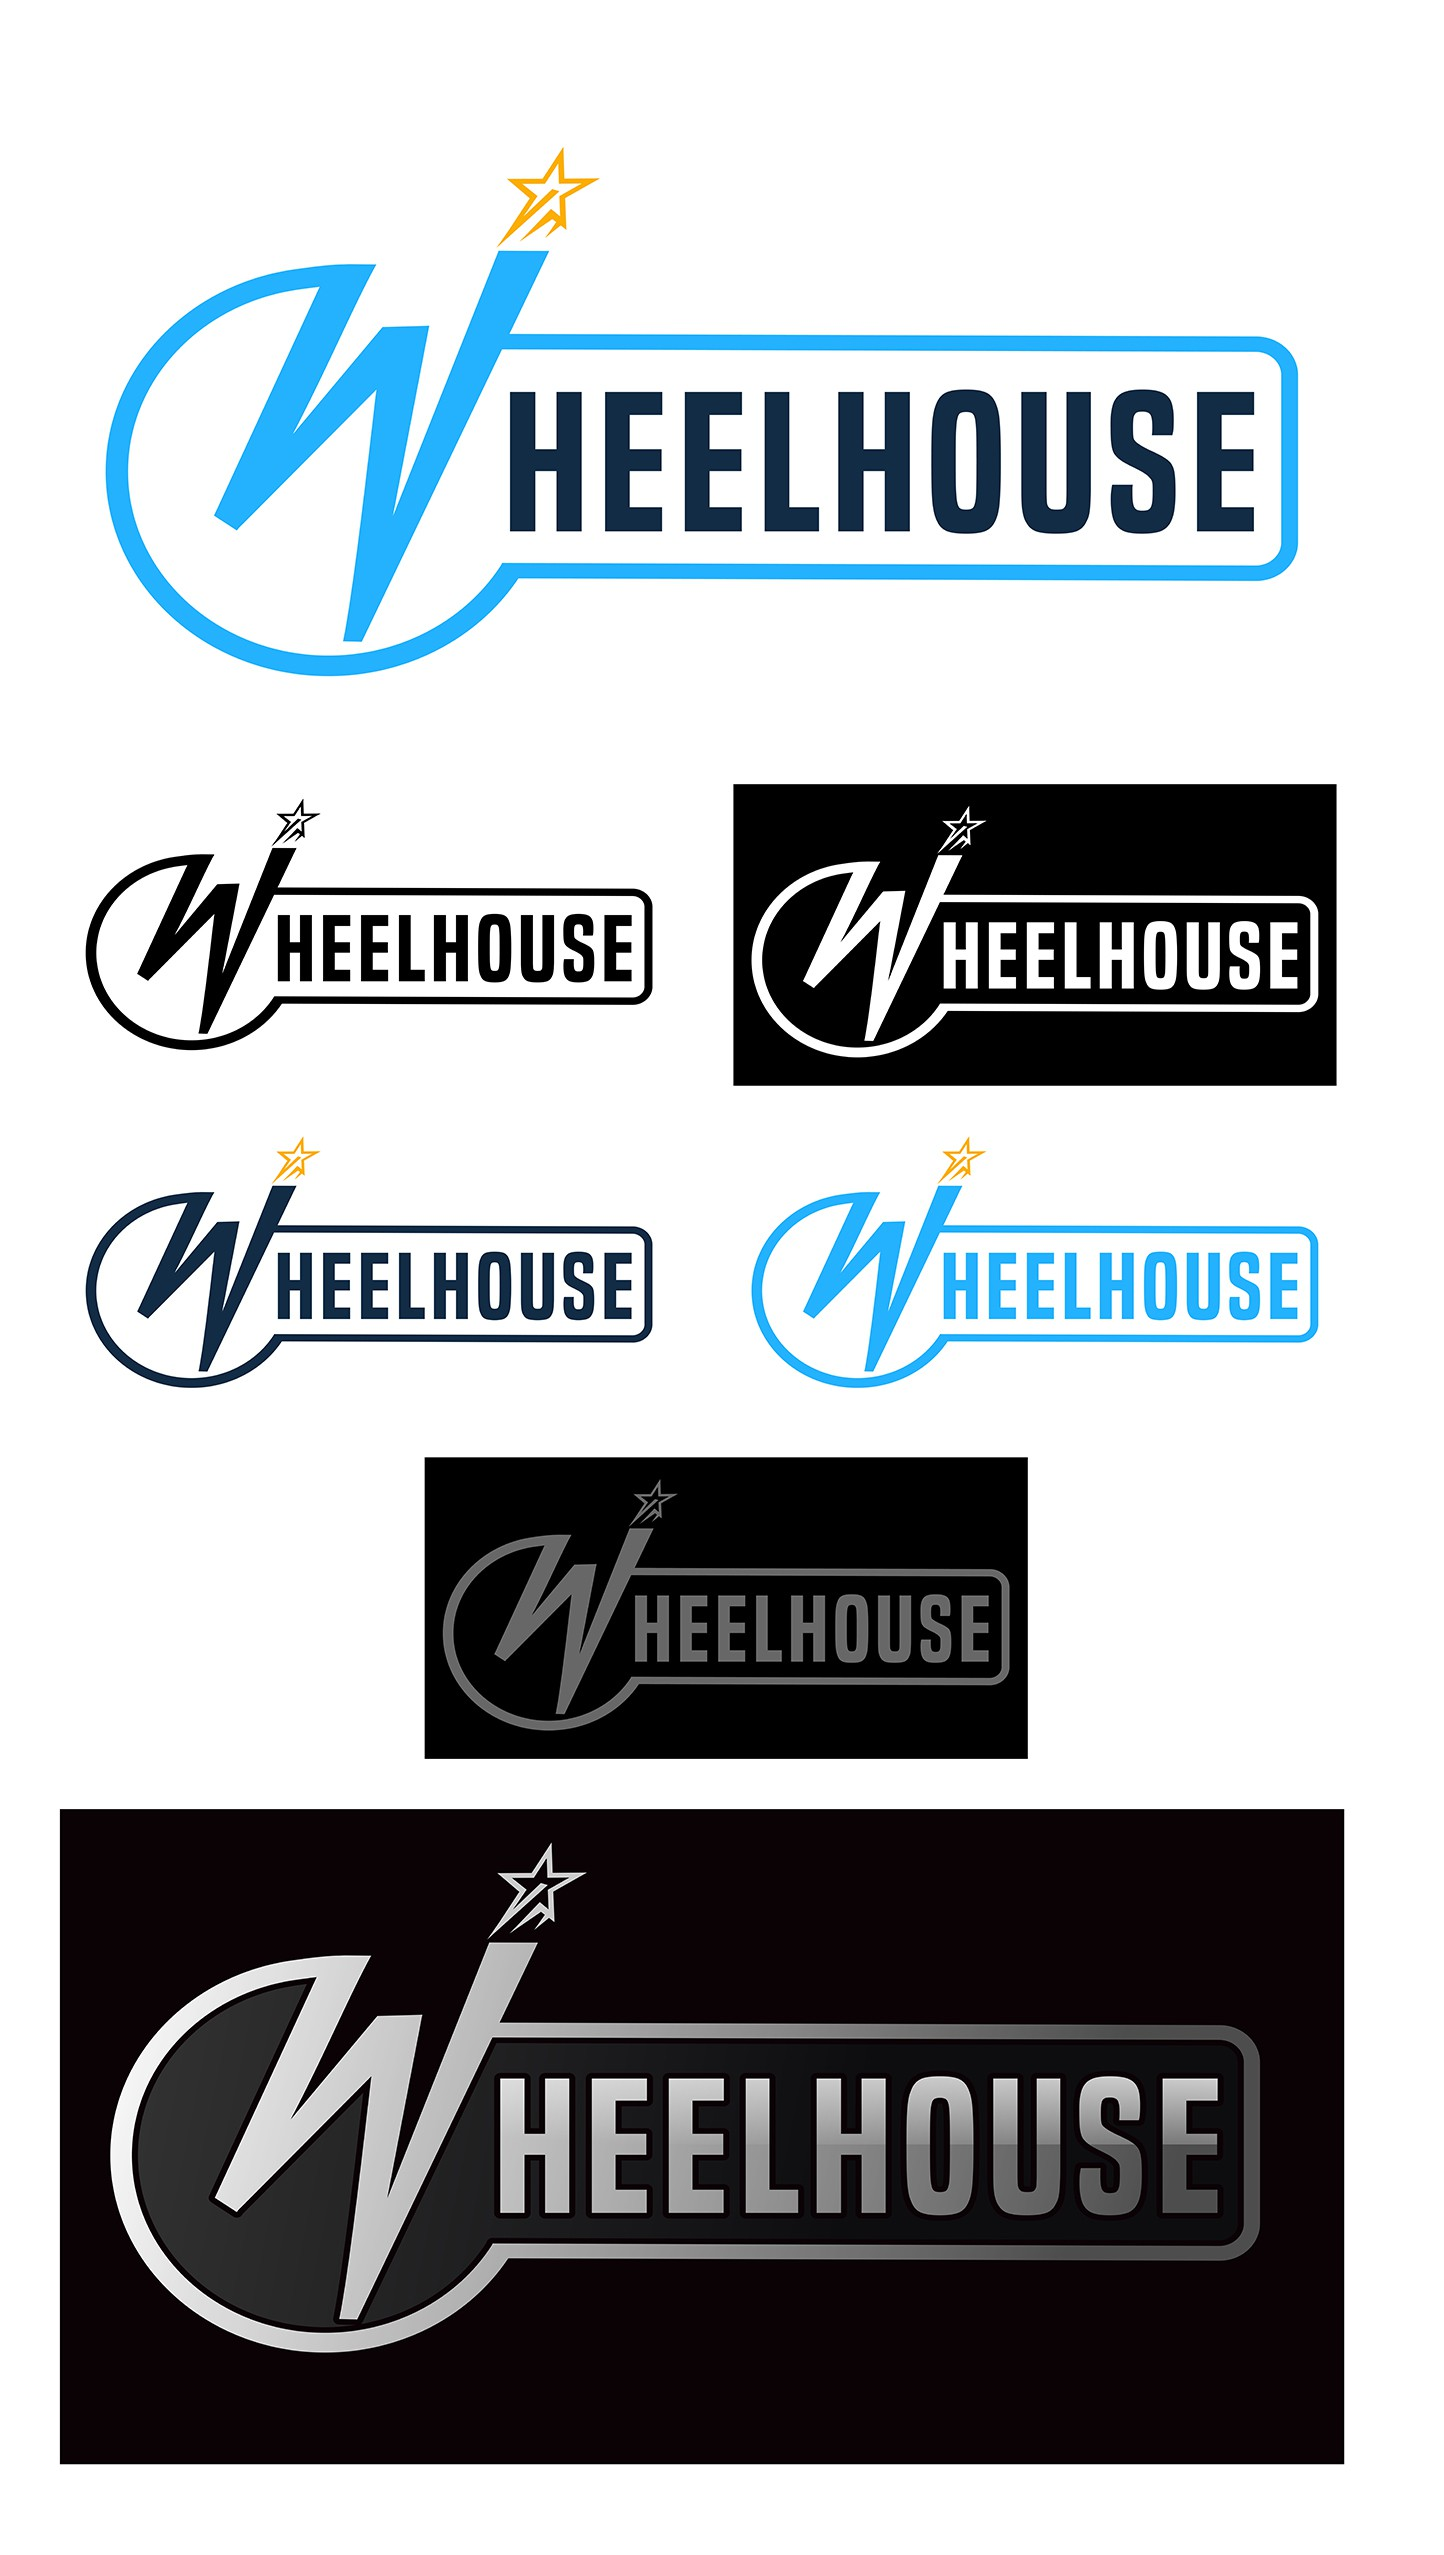 Looking for a fun, welcoming logo for a sports and hobby shop